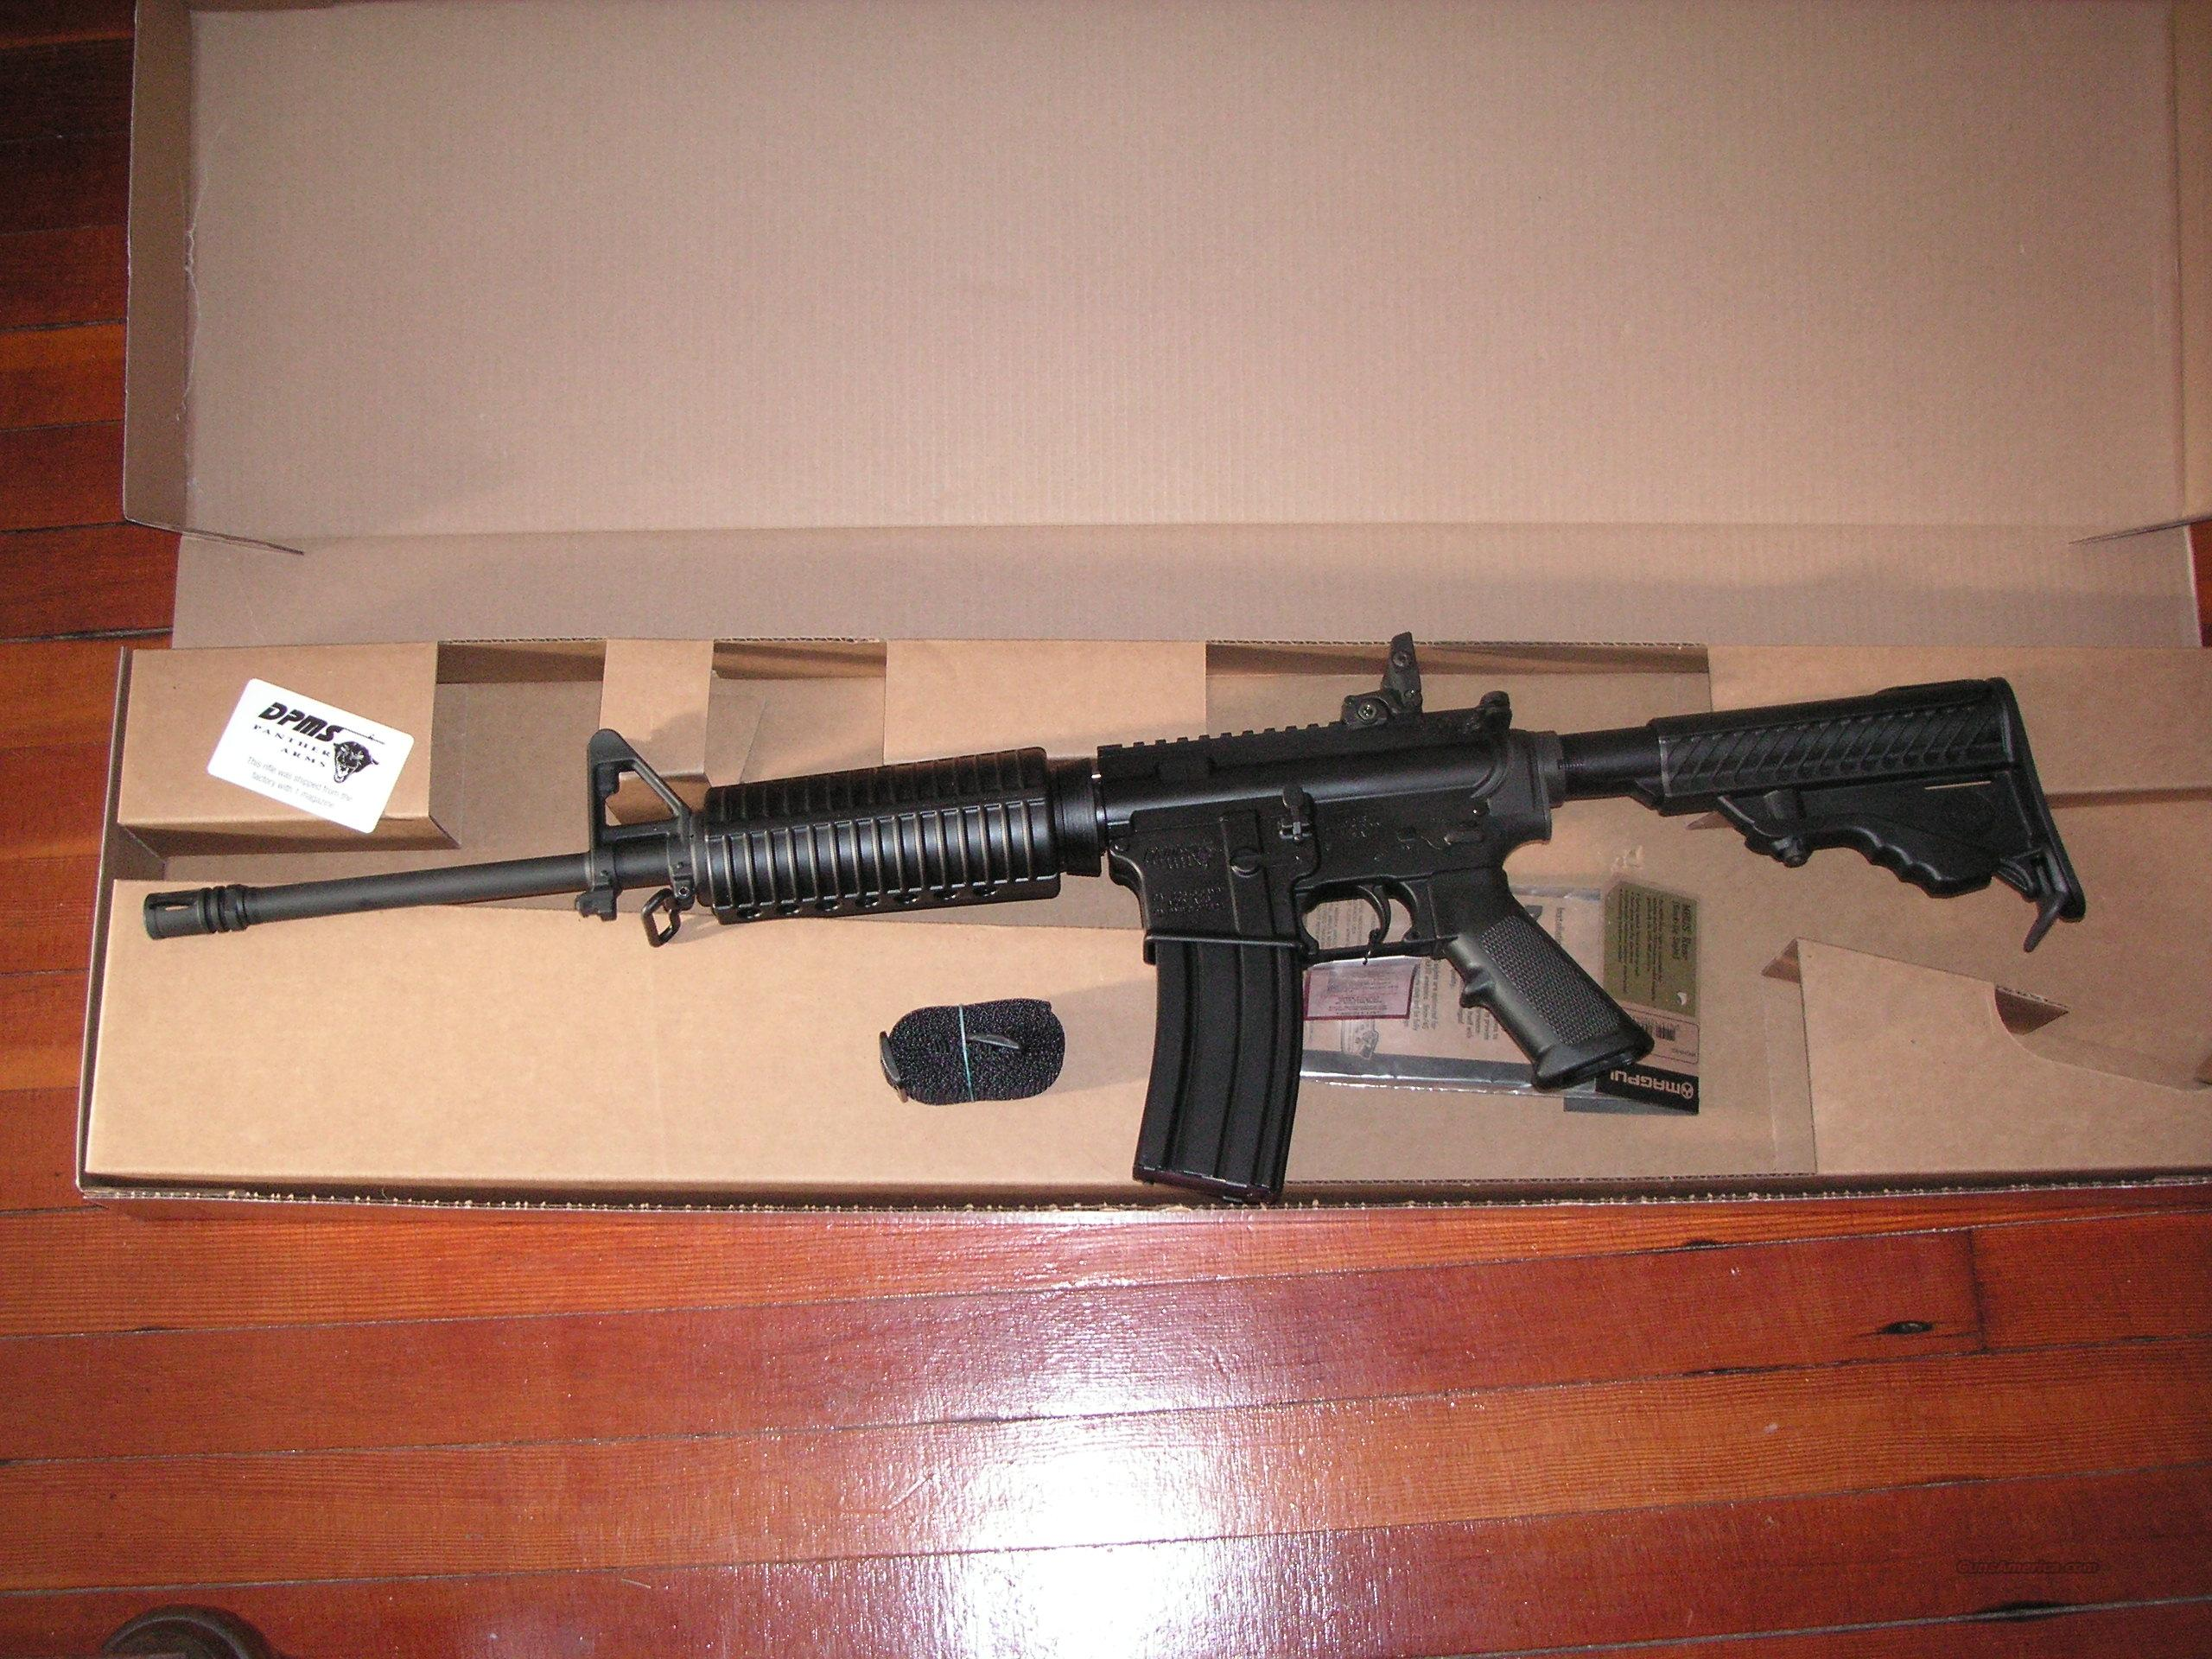 DPMS A15 brand new rifle cal. .223 Rem.  Guns > Rifles > AR-15 Rifles - Small Manufacturers > Complete Rifle